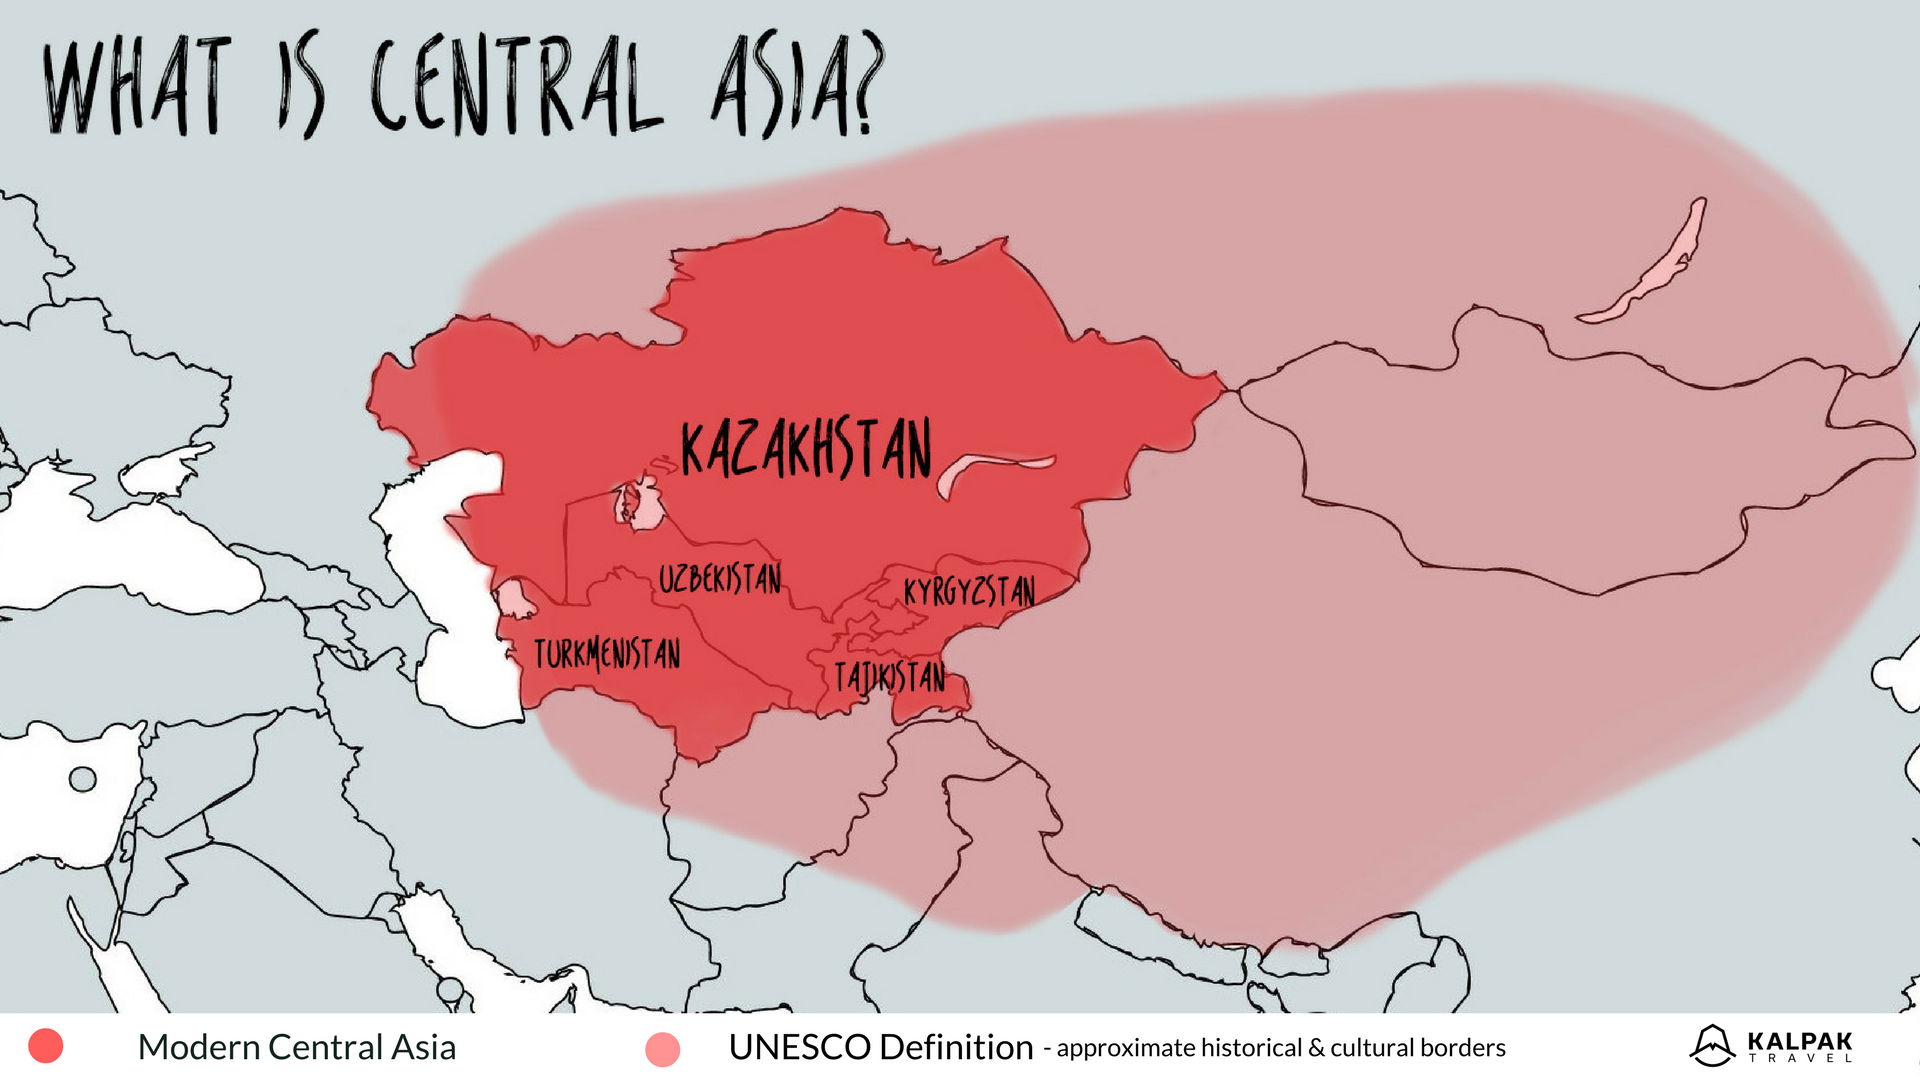 Central Asia map with modern definition borders and historical -cultural definition of UNESCO